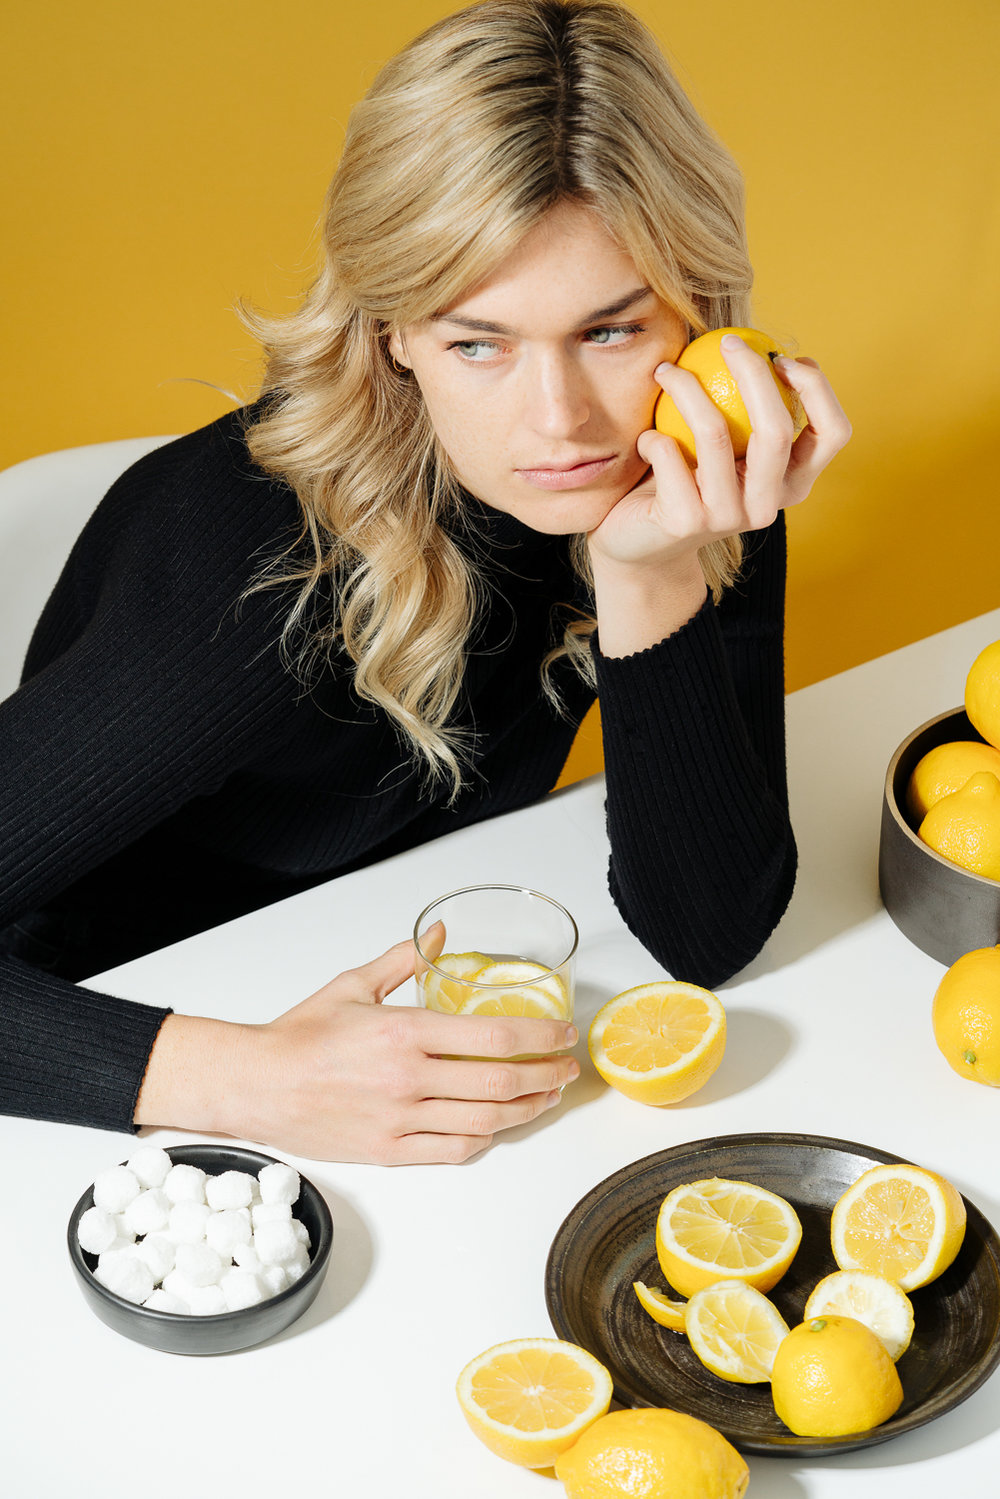 When Life Gives you Lemons_Humans and Food-12.jpg